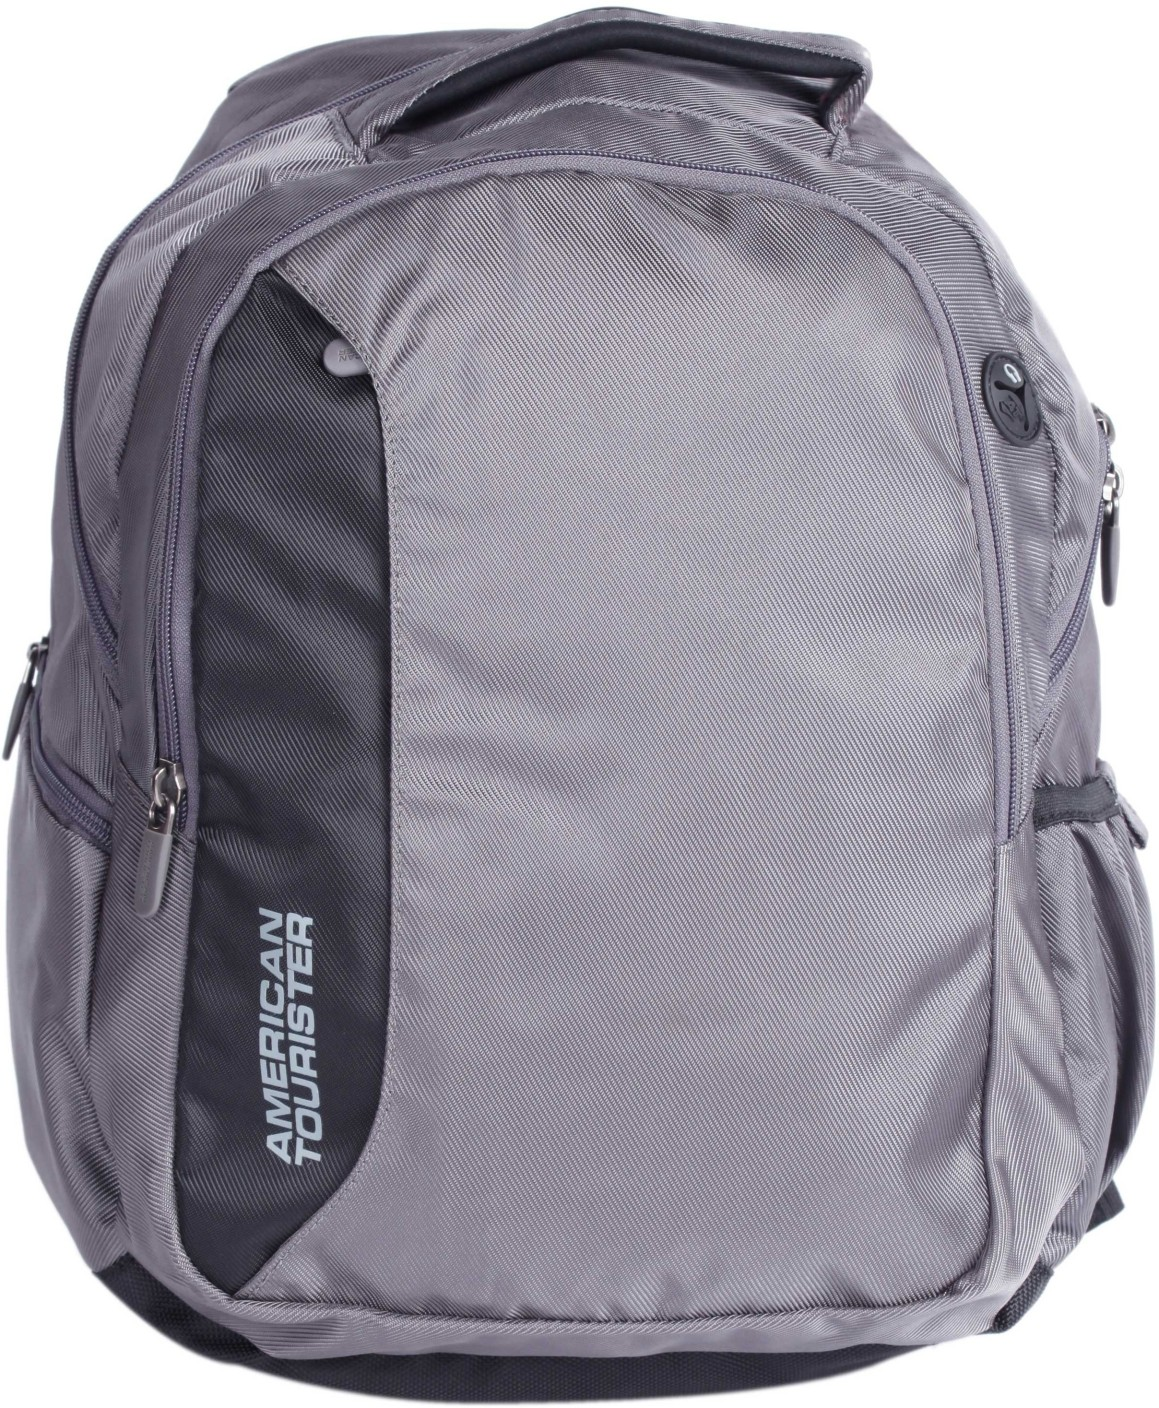 American tourister laptop backpack grey price in india - American tourister office bags ...